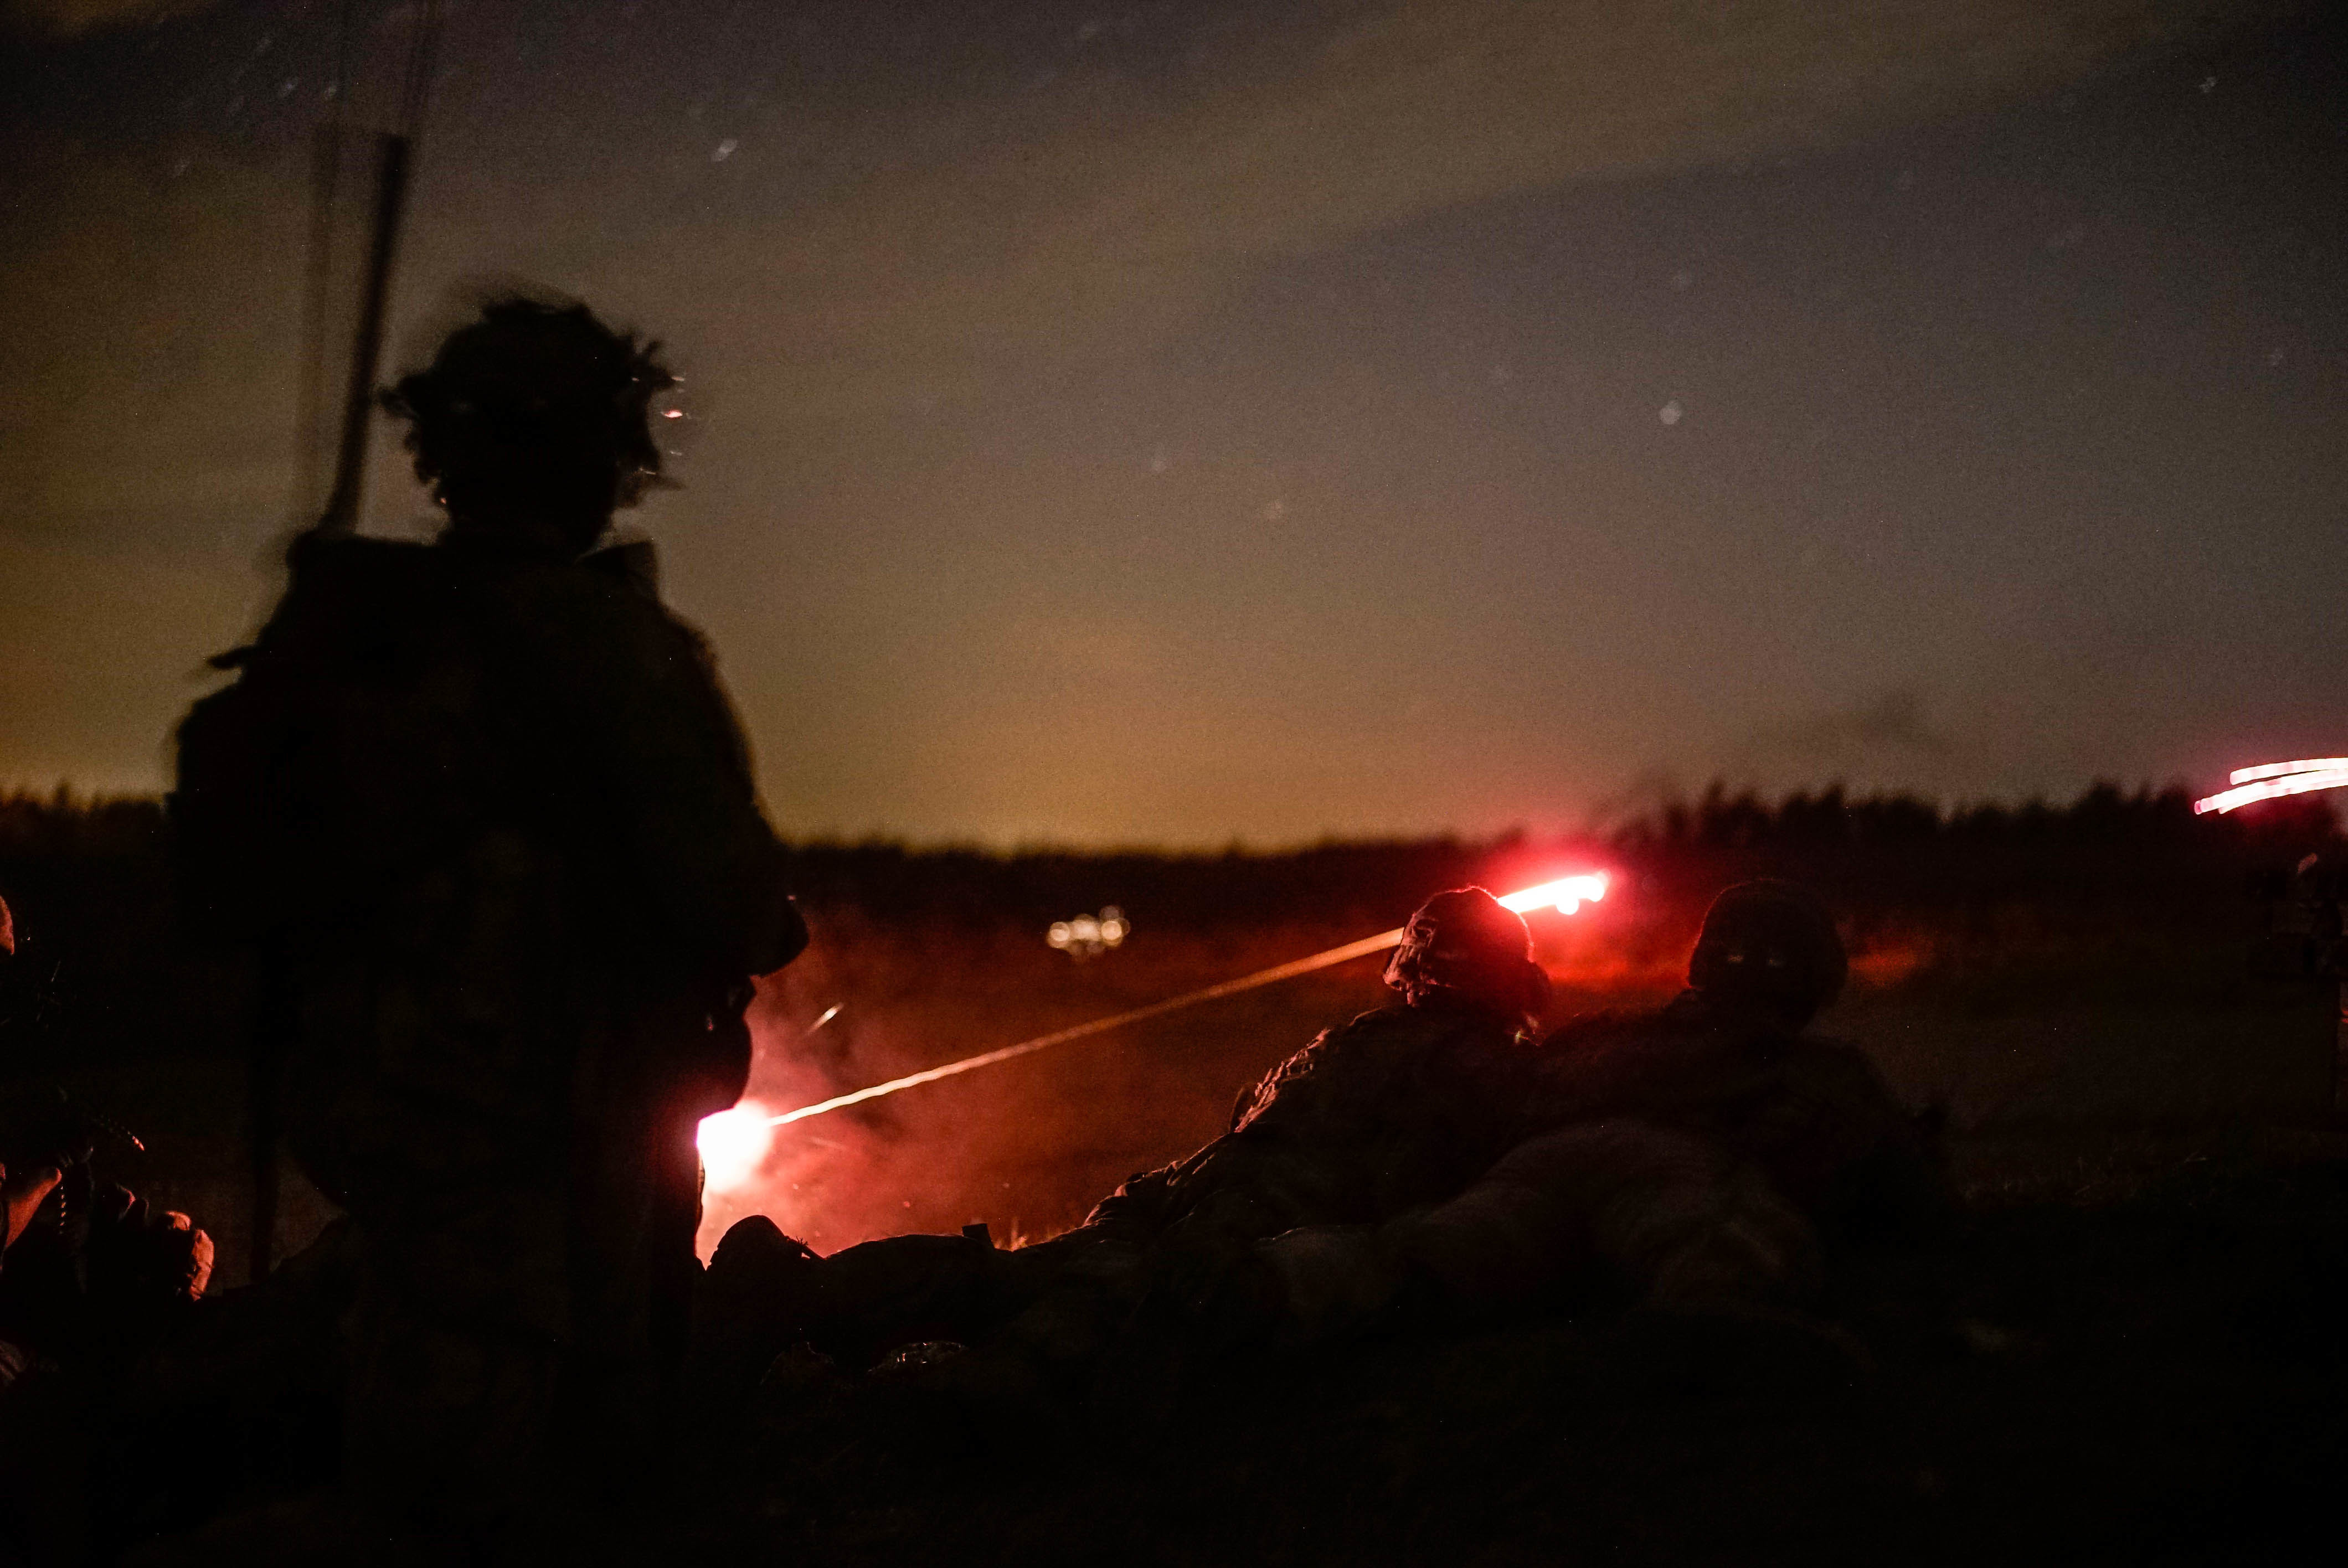 U.S. Army paratroopers with the 1st Battalion, 503rd Infantry Regiment, 173rd Airborne Brigade fire down range during a night exercise at the 7th Army Training Command's Grafenwoehr Training Area, Germany, May 2, 2018. Exercise Eagle Fury is a combined arms live fire exercise that tests day and night live fire capabilities across multiple military specialties. (U.S. Army photo by Spc. Elliott Banks)